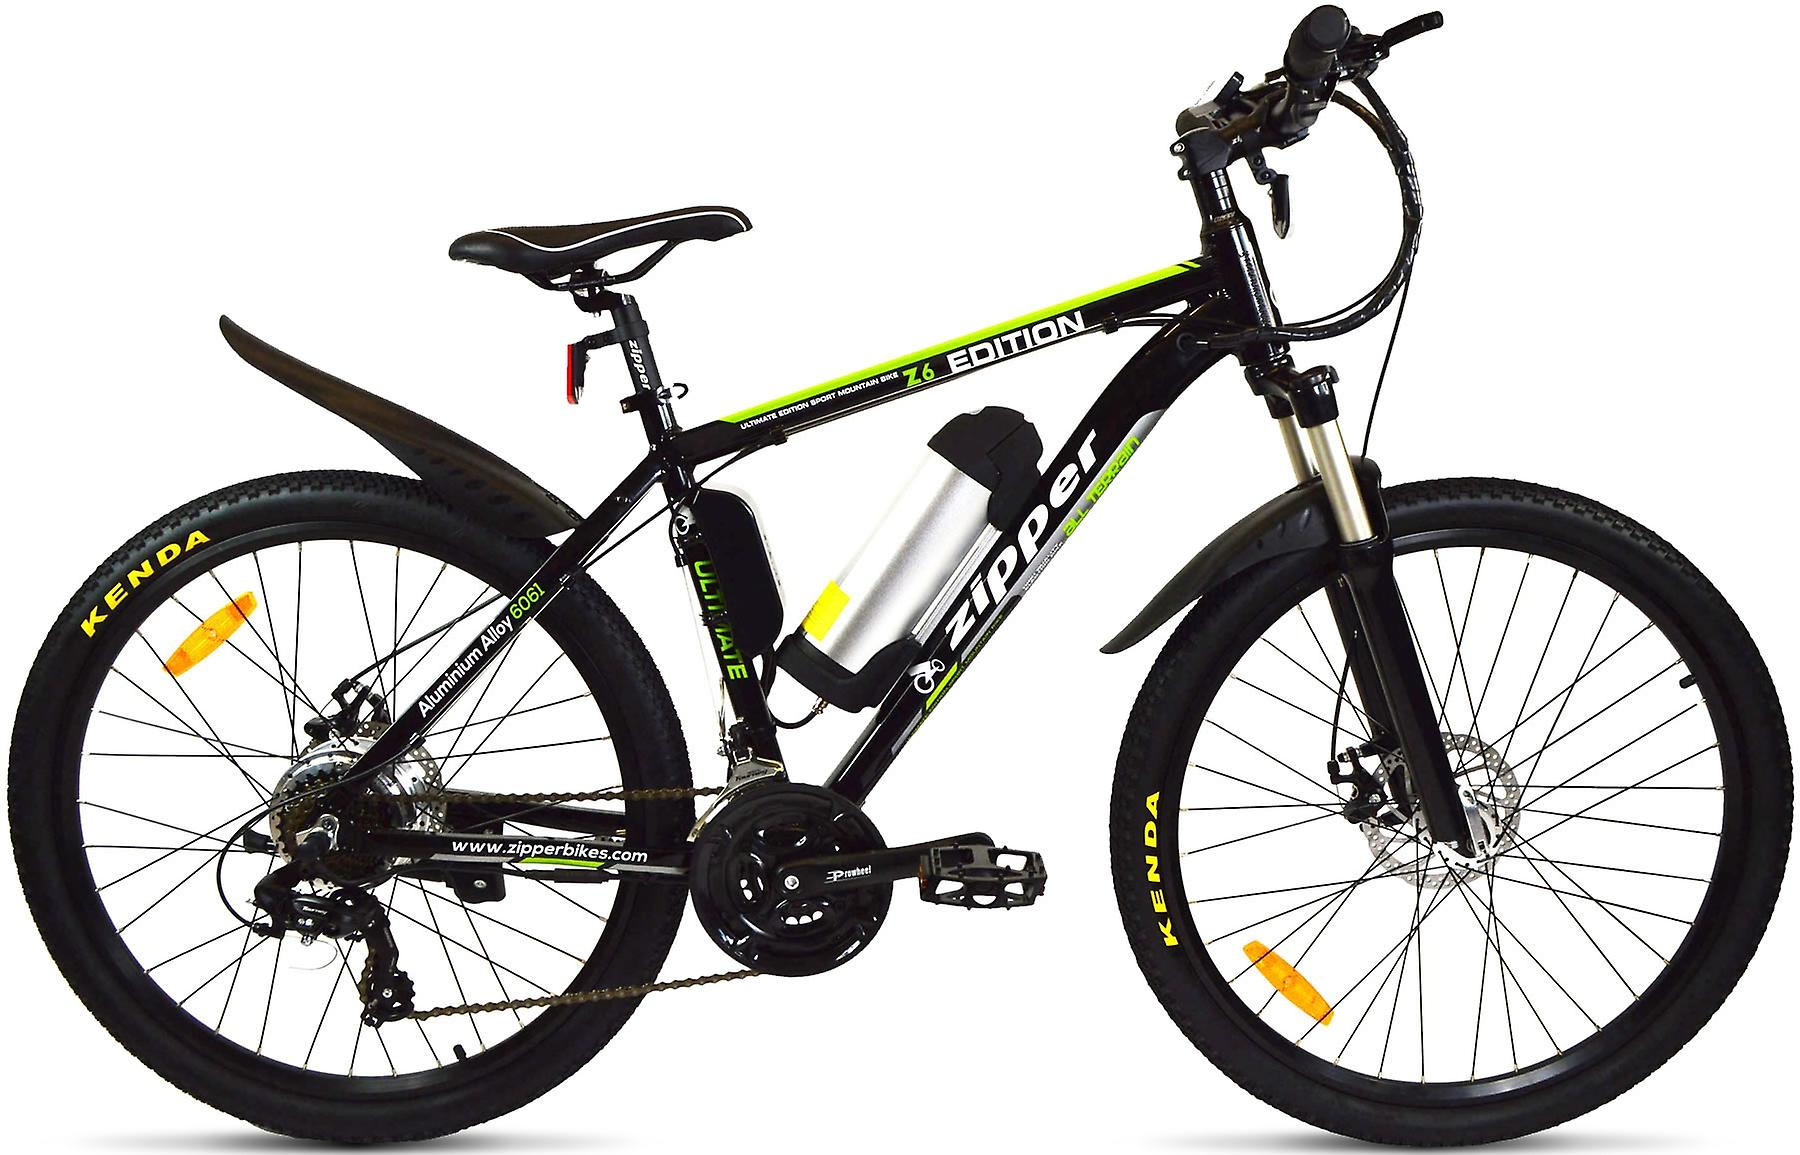 Z6 21-Speed Ultimate Edition Electric Mountain Bike 26